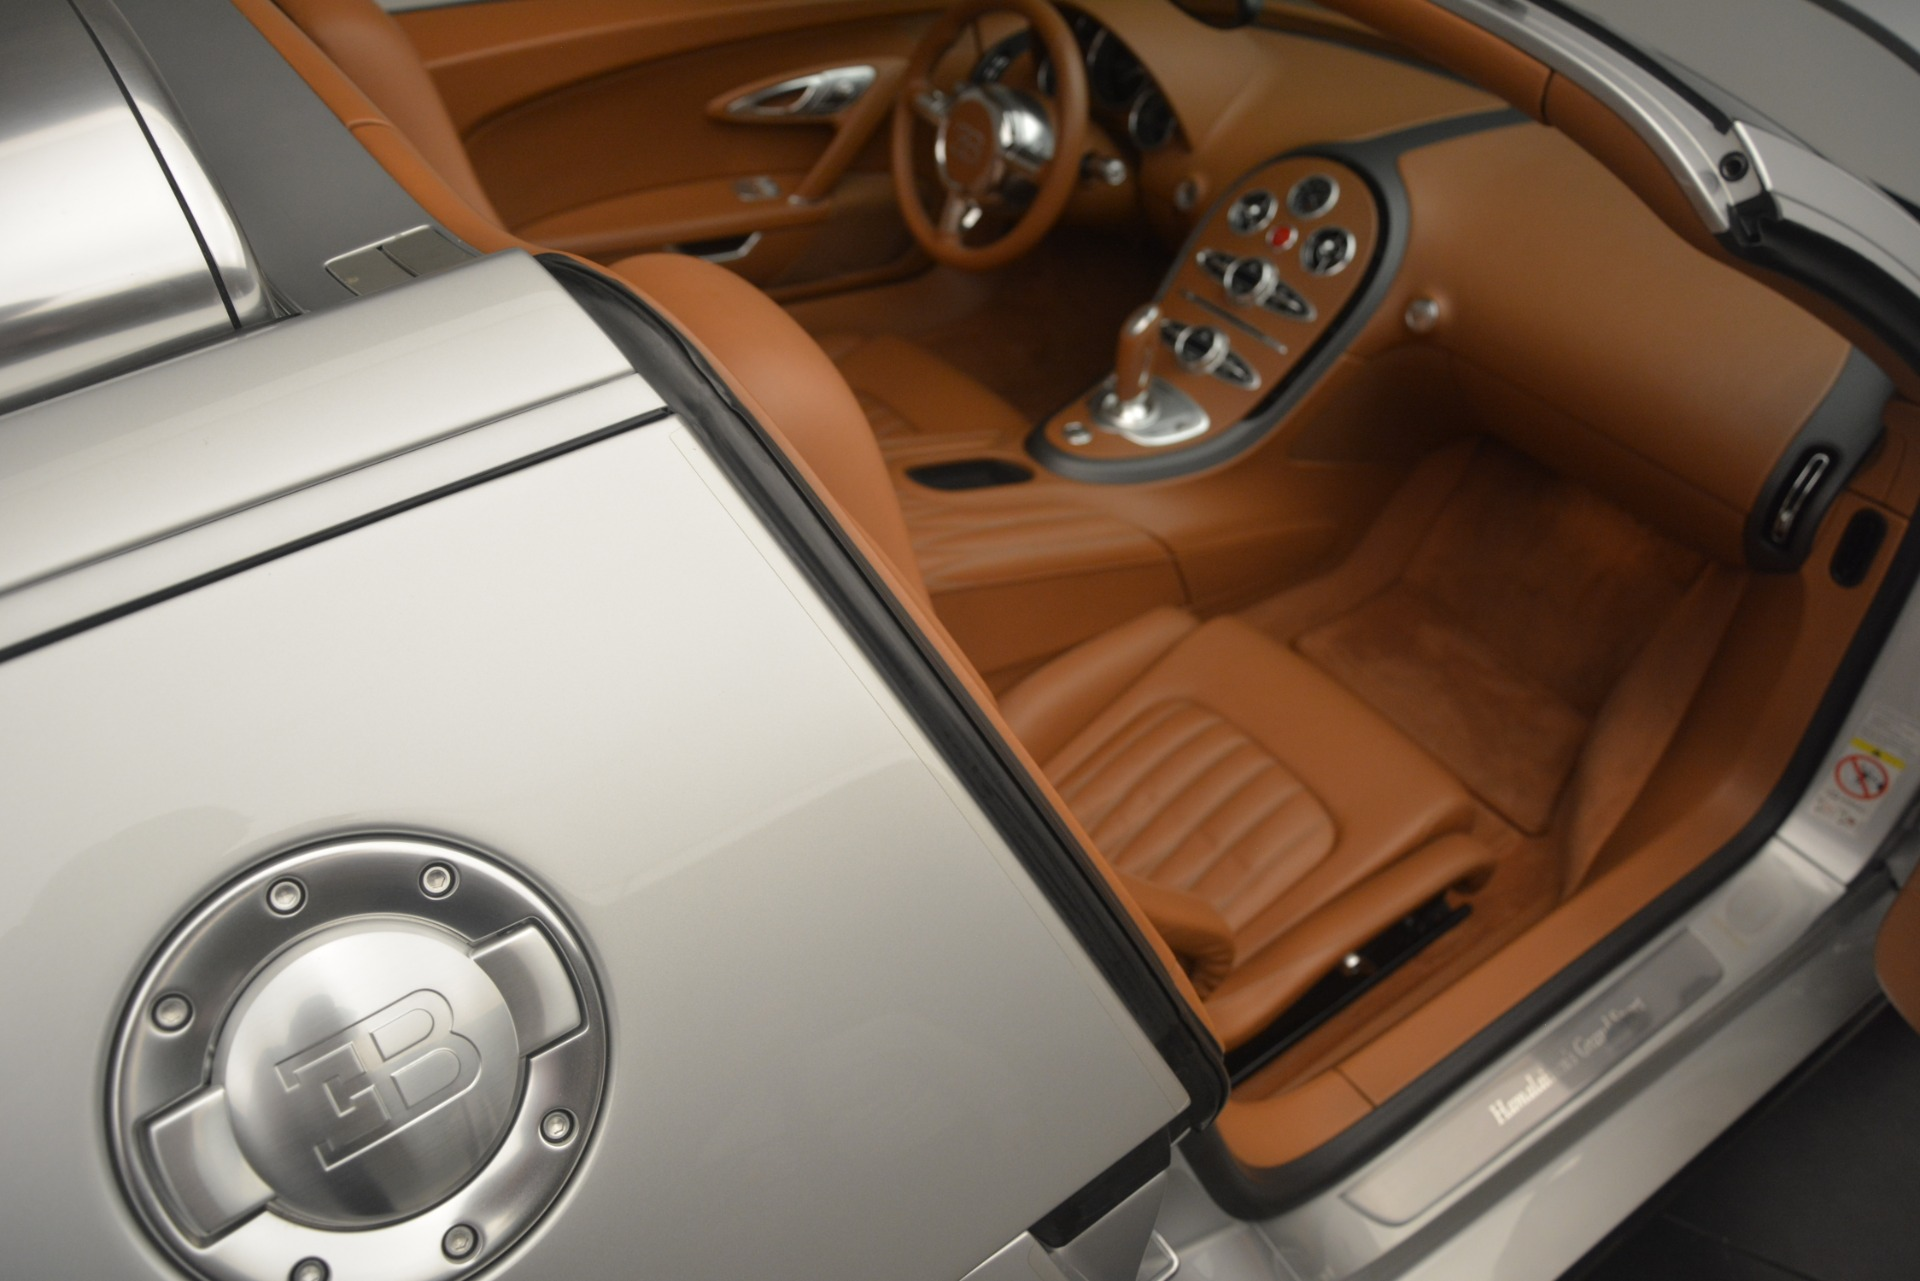 Used 2010 Bugatti Veyron 16.4 Grand Sport For Sale In Westport, CT 3159_p32